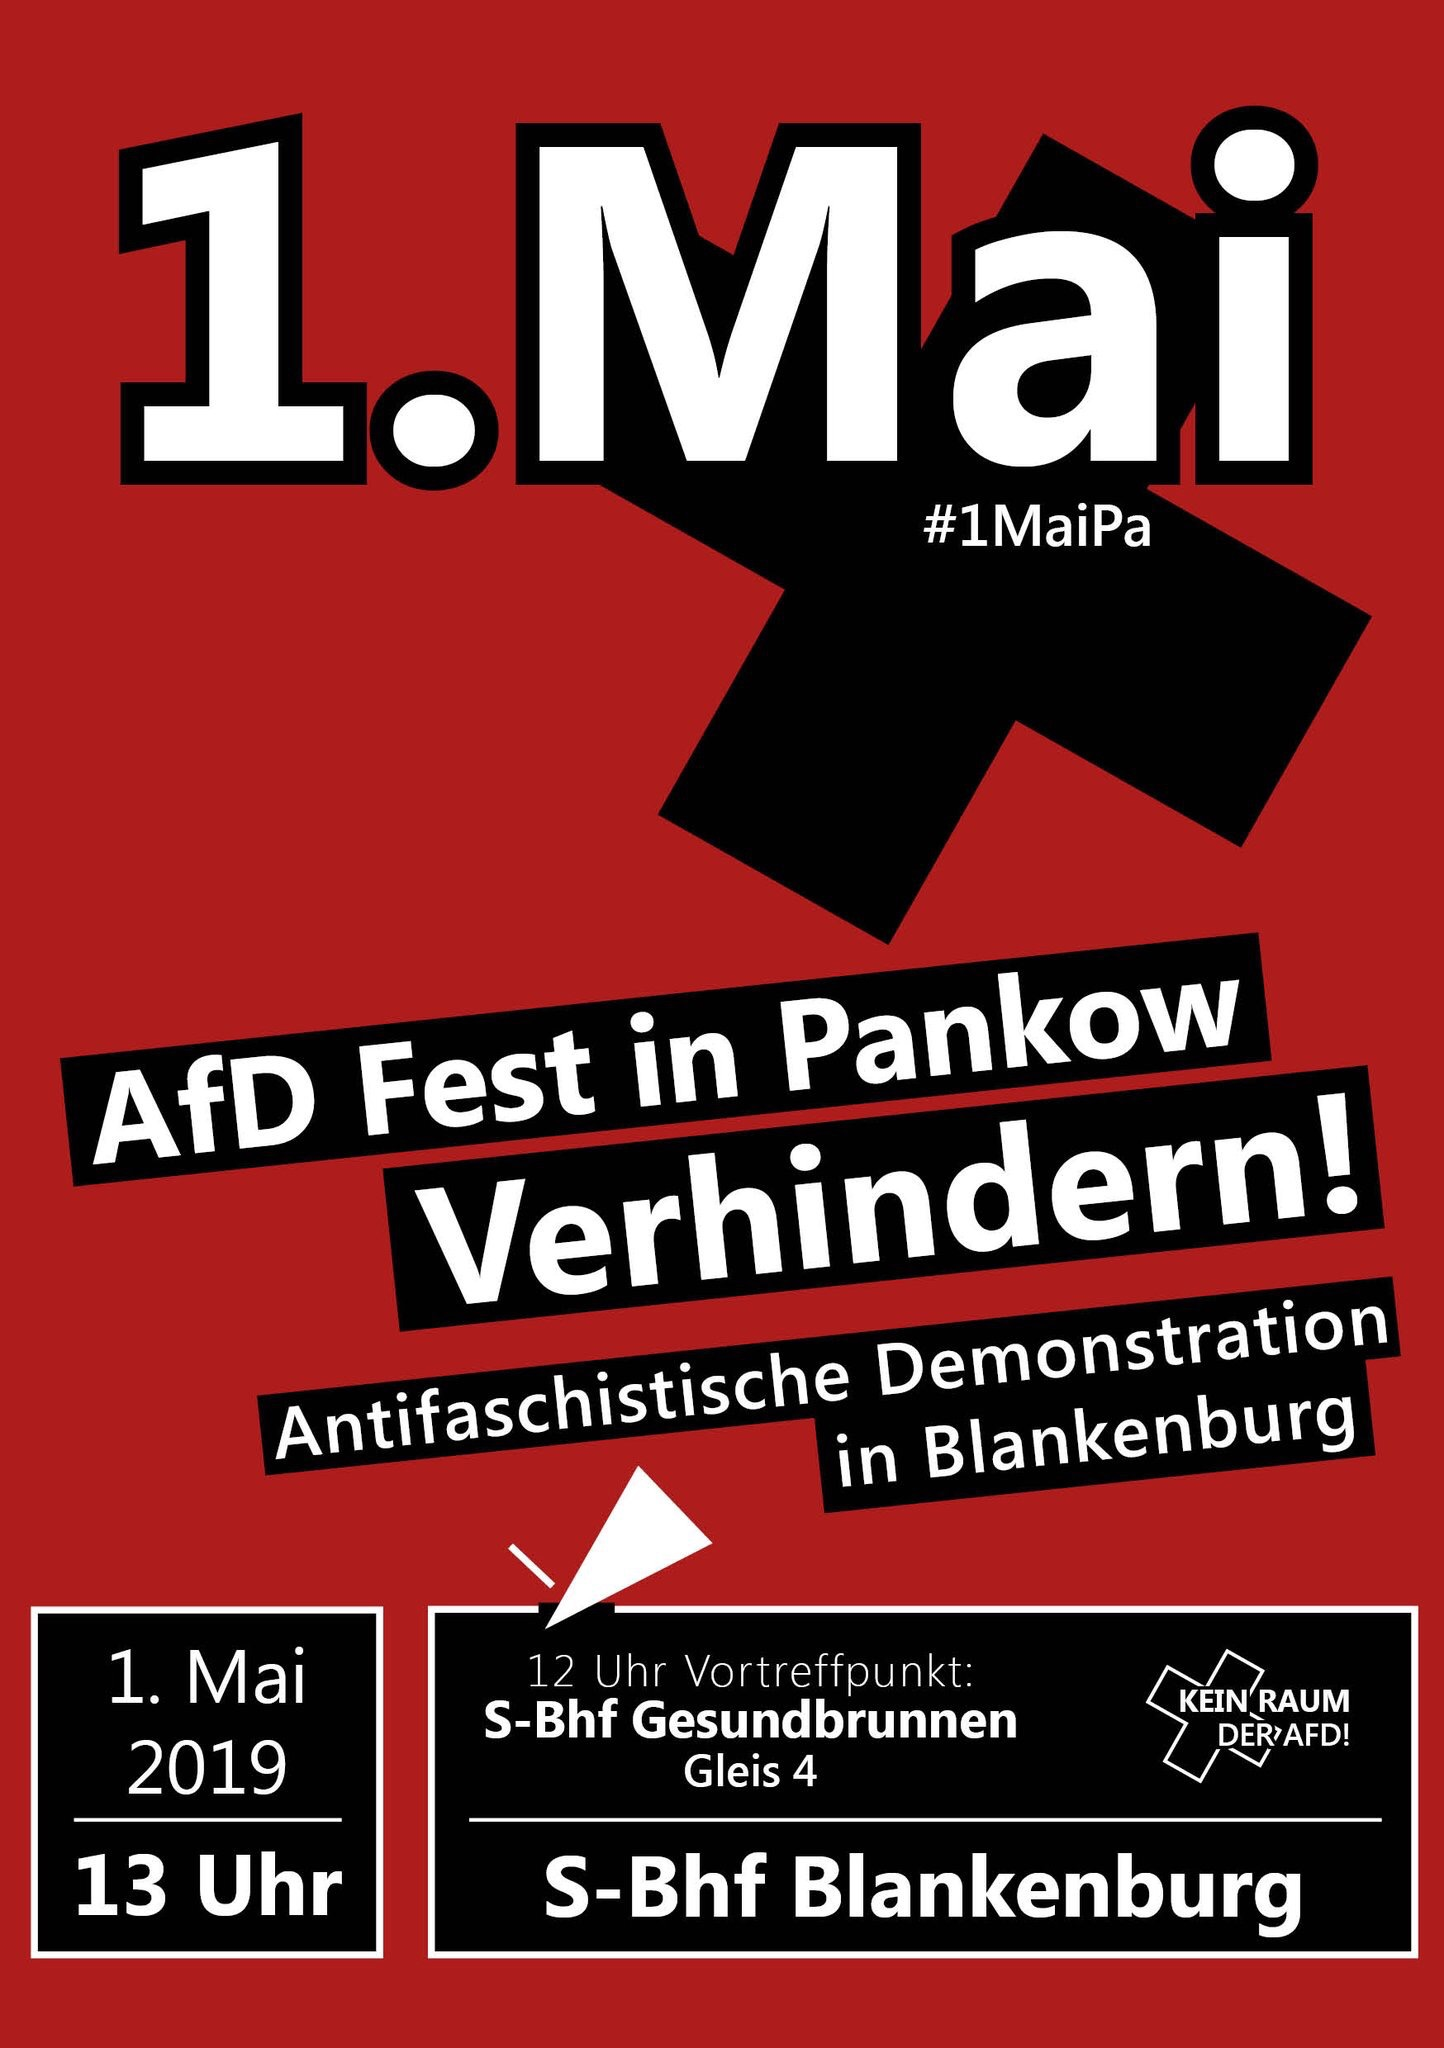 Afd Büro Berlin Blankenburg Antifa-berlin.info | Portal Antifaschistischer Initiativen